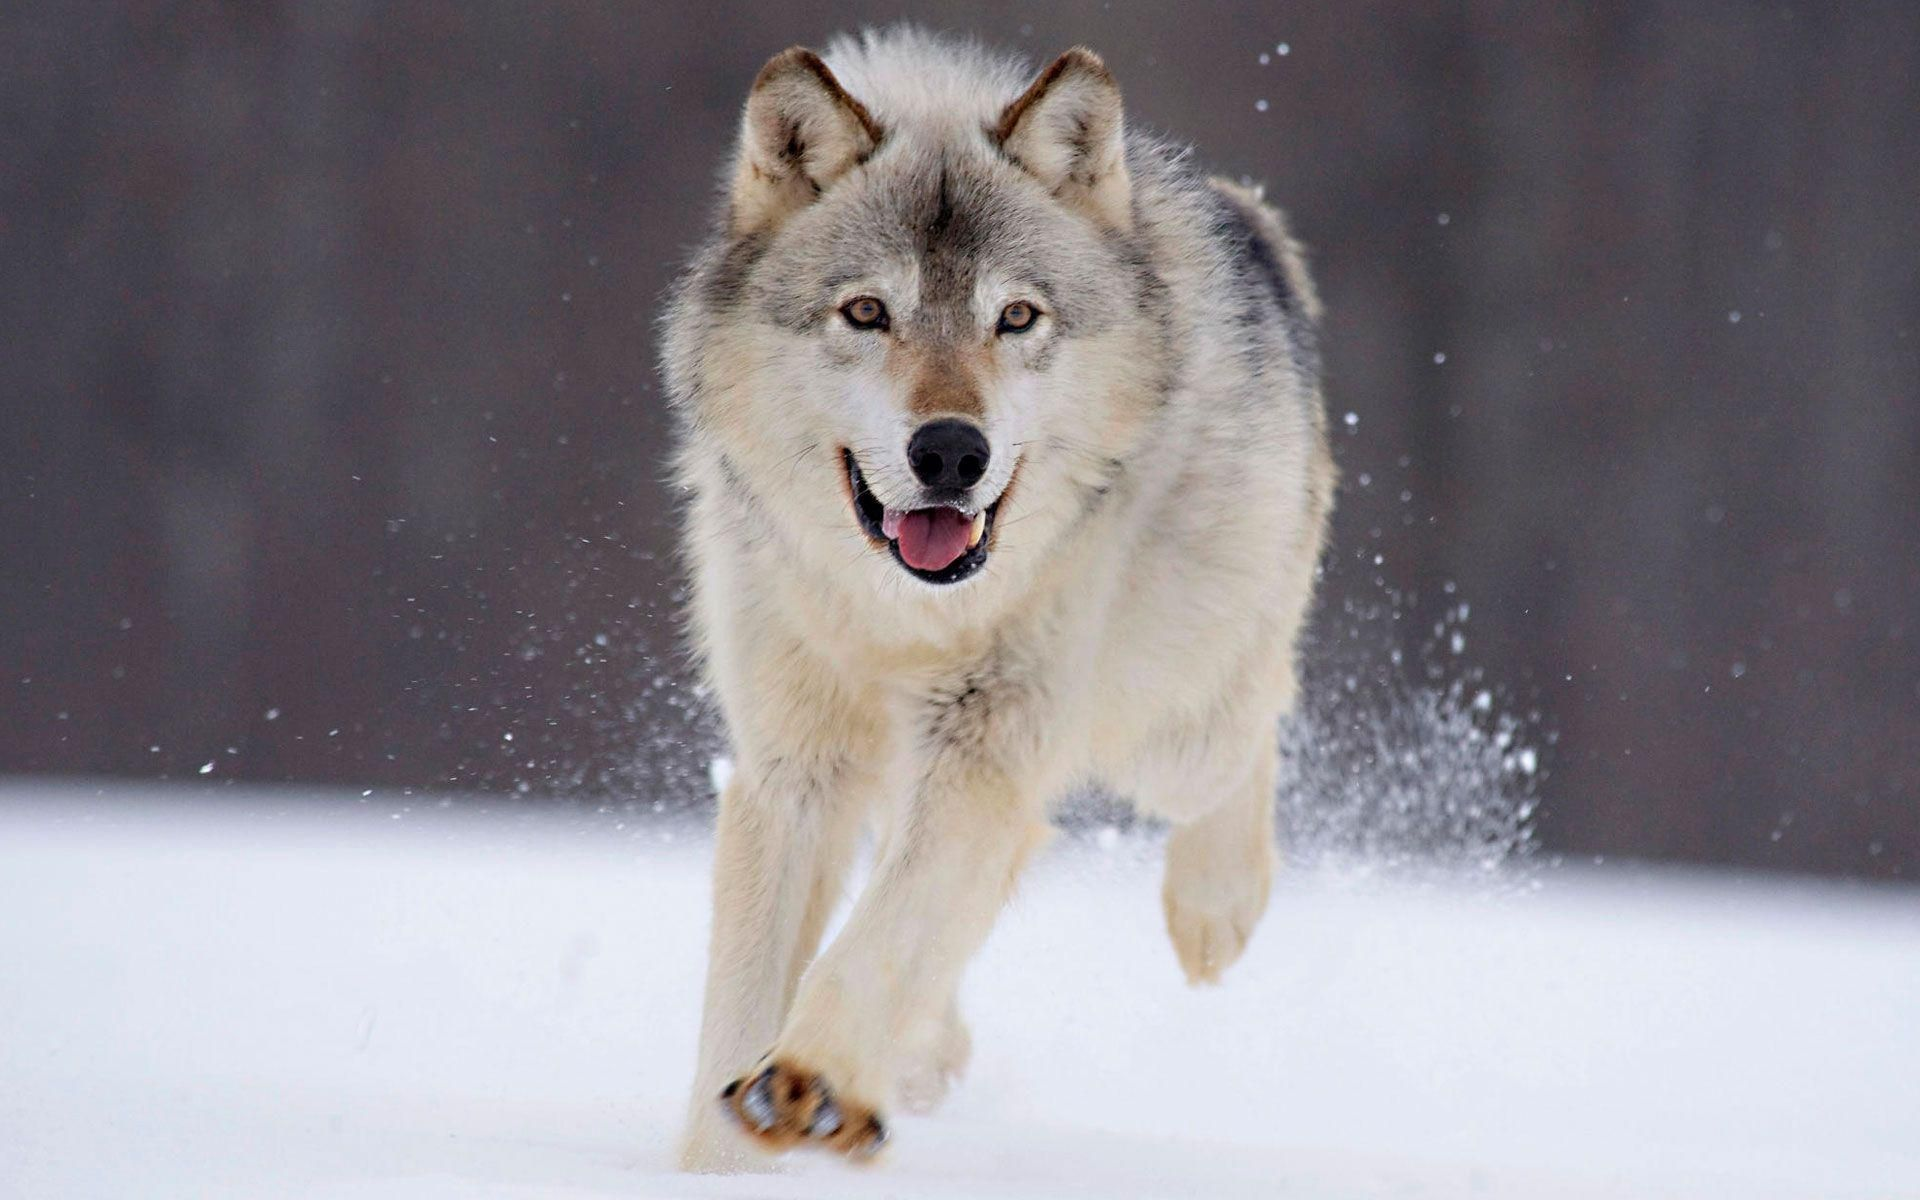 cool wolf running in the snow wallpaper Check more at http://www.finewallpapers.eu/pin/9363/